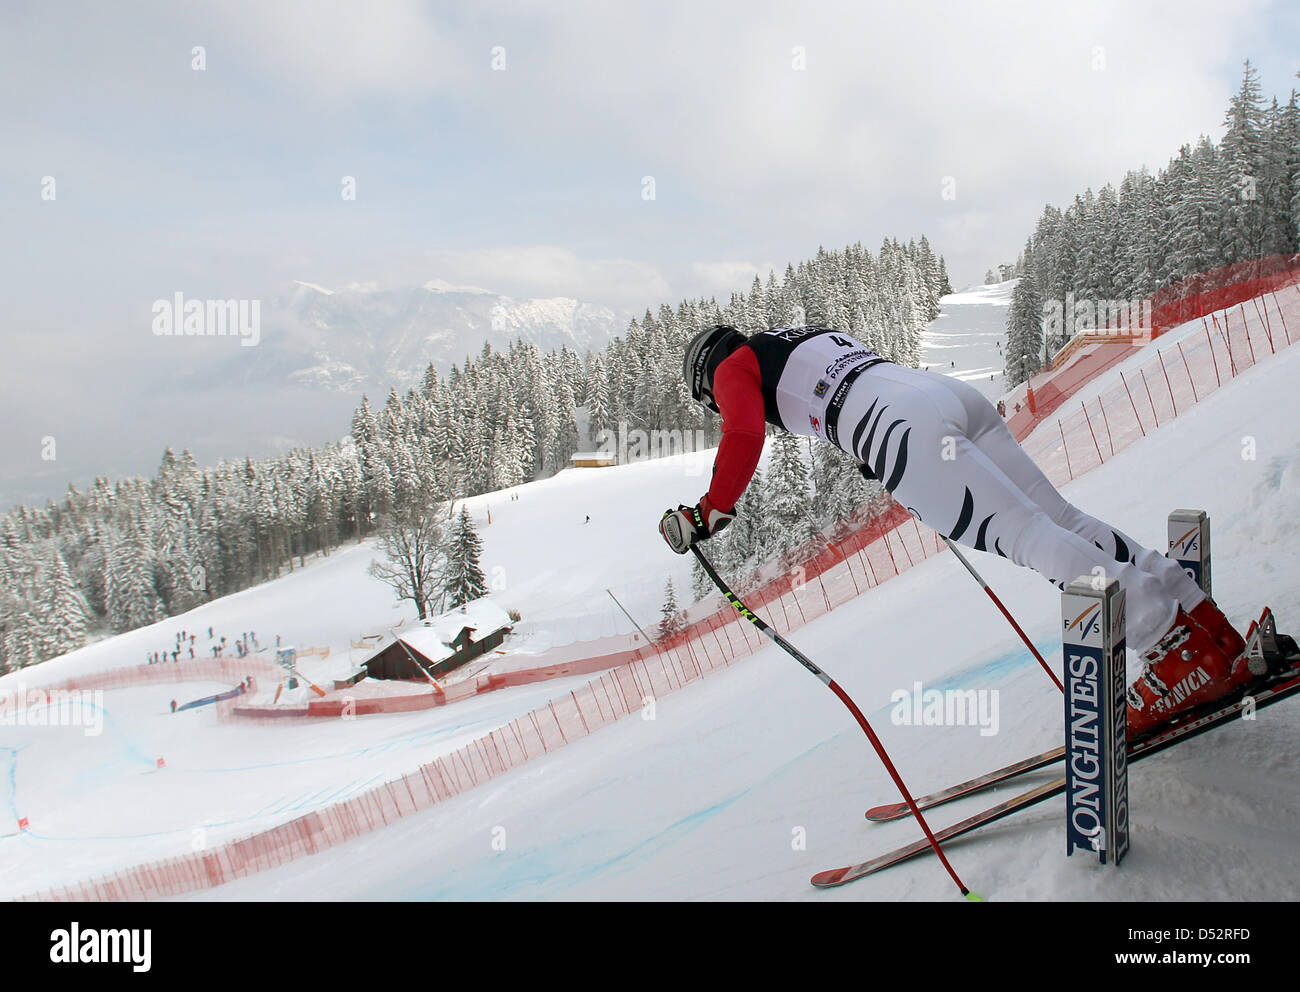 German Gina Stechert pictured during the downhill training for the final of the Skiing World Cup 2010 at the Kandahar - Stock Image